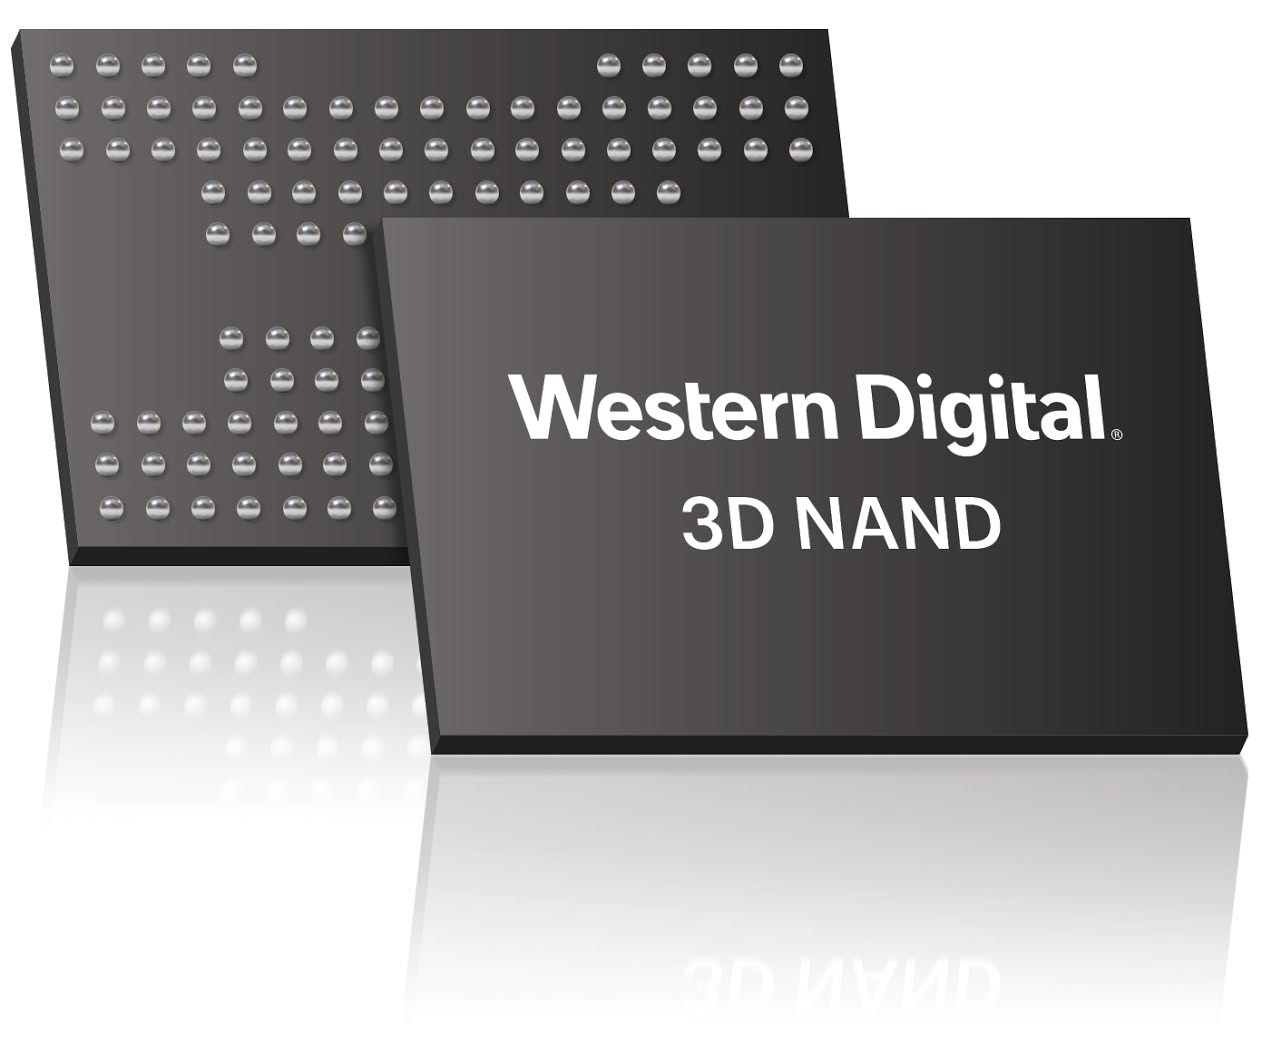 Flash memory, NAND-Flash, Multi-level cell, , Western Digital, Computer data storage, Toshiba, , NAND gate, Integrated Circuits & Chips, 3d nand flash memory chip market, product, text, multimedia, font, product, brand, computer keyboard